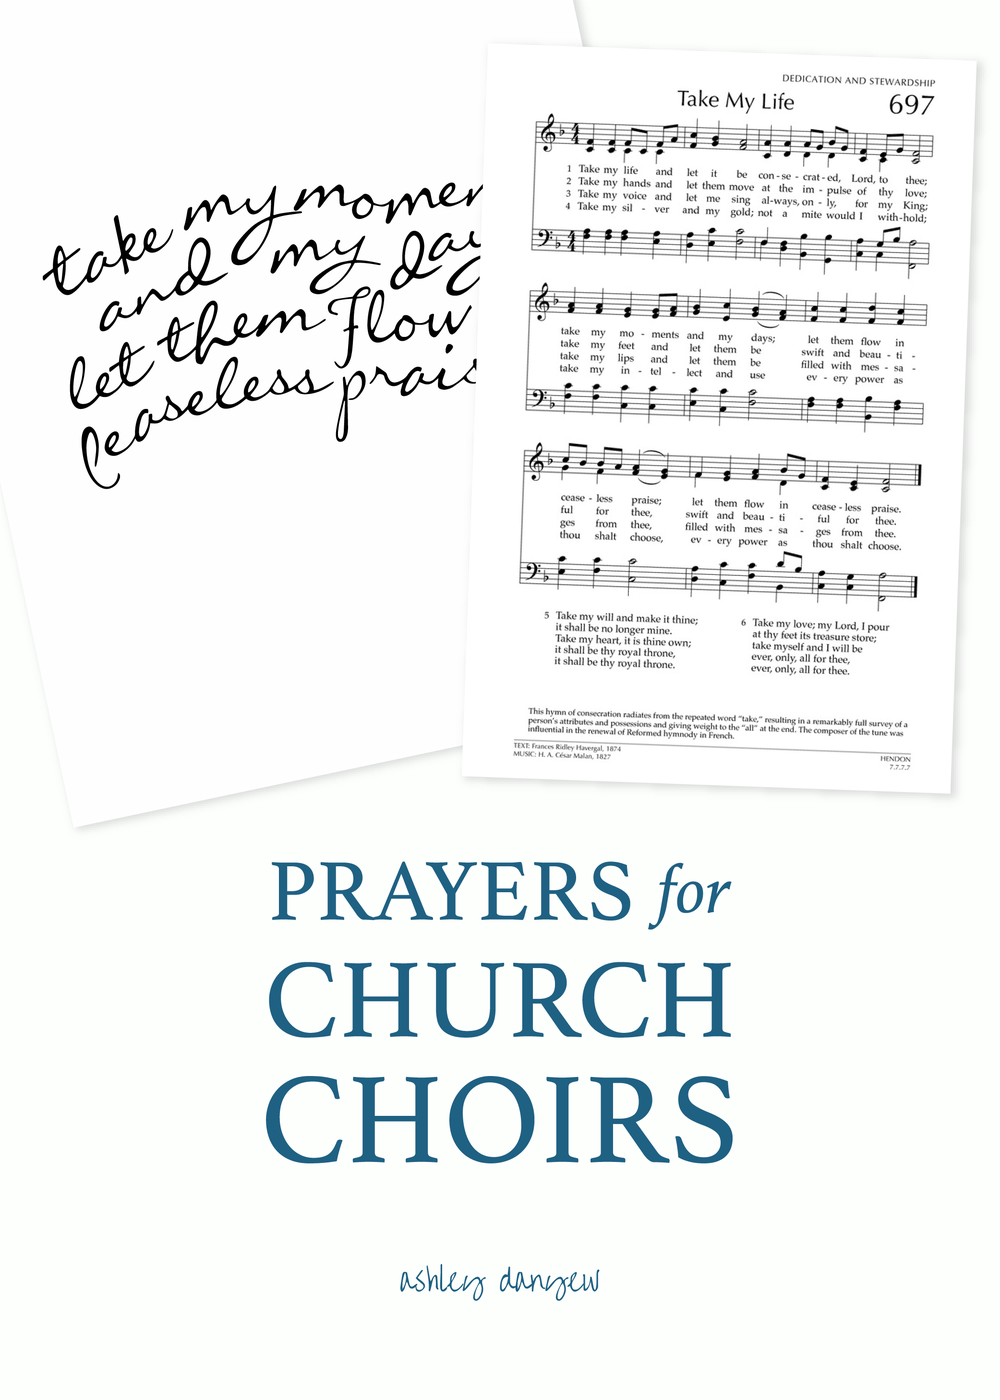 Prayers-for-Church-Choirs-01.png